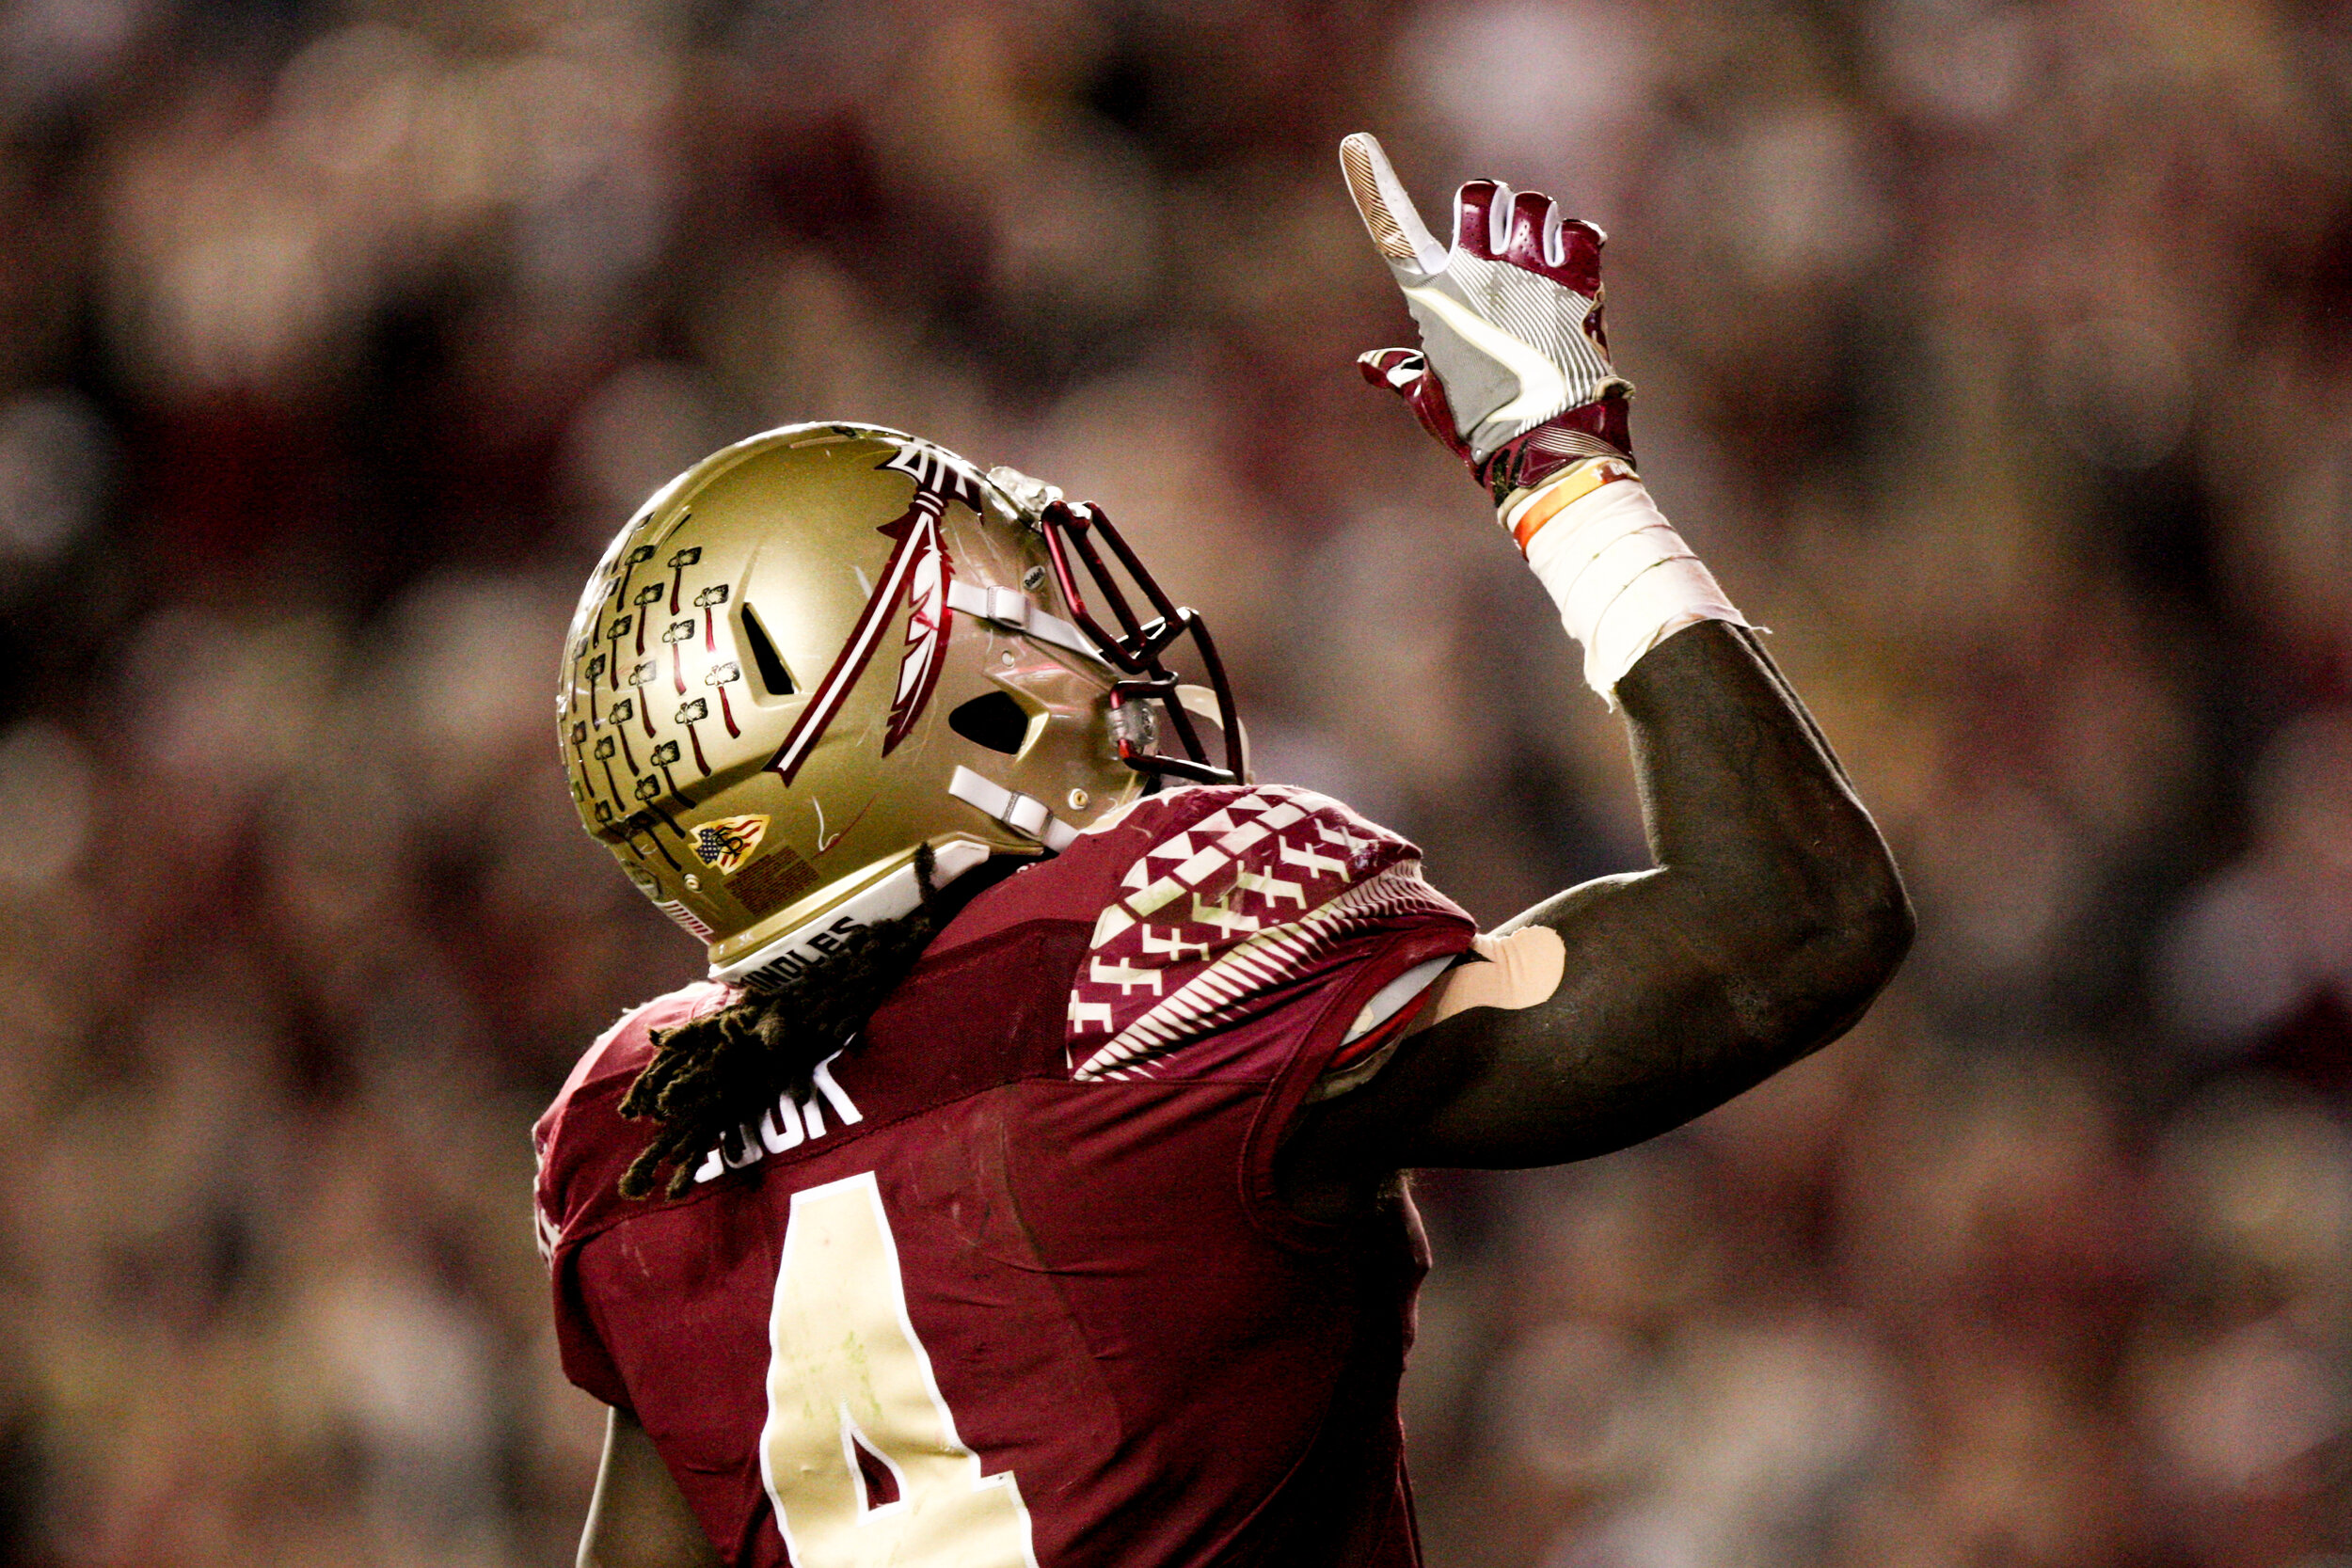 Dalvin Cook, of the Florida State Seminoles, became the all-time leading rusher in his three years on the team, surpassing the greats like Warwick Dunn and Greg Allen to a total of 4,464 yards rushing by the time he was drafted to the Minnesota Vikings.